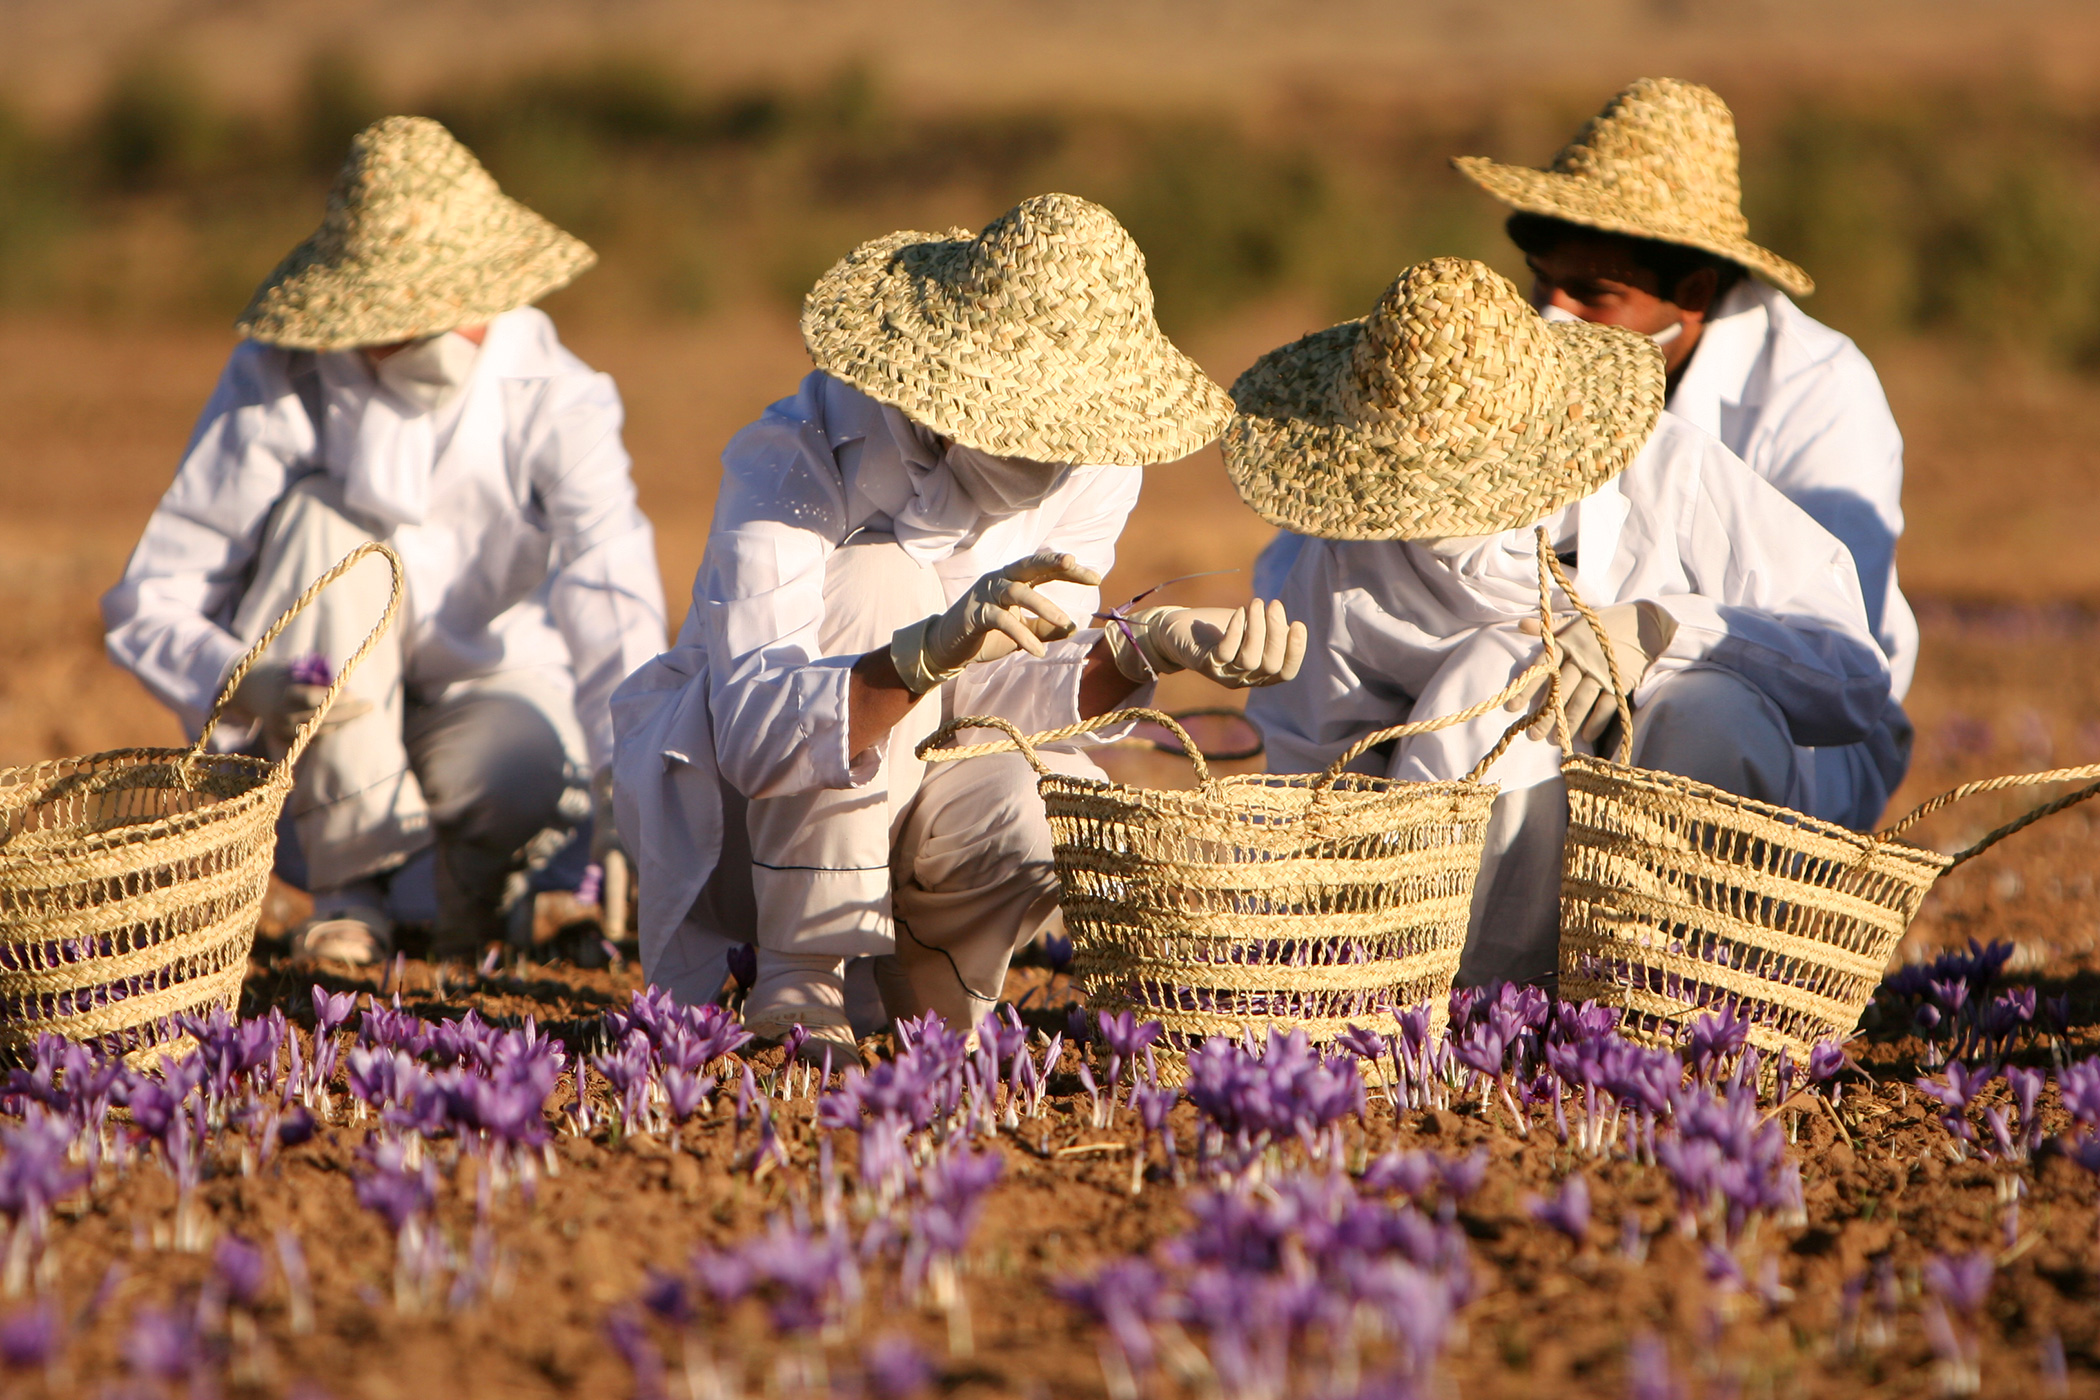 Saffron farm in Iran